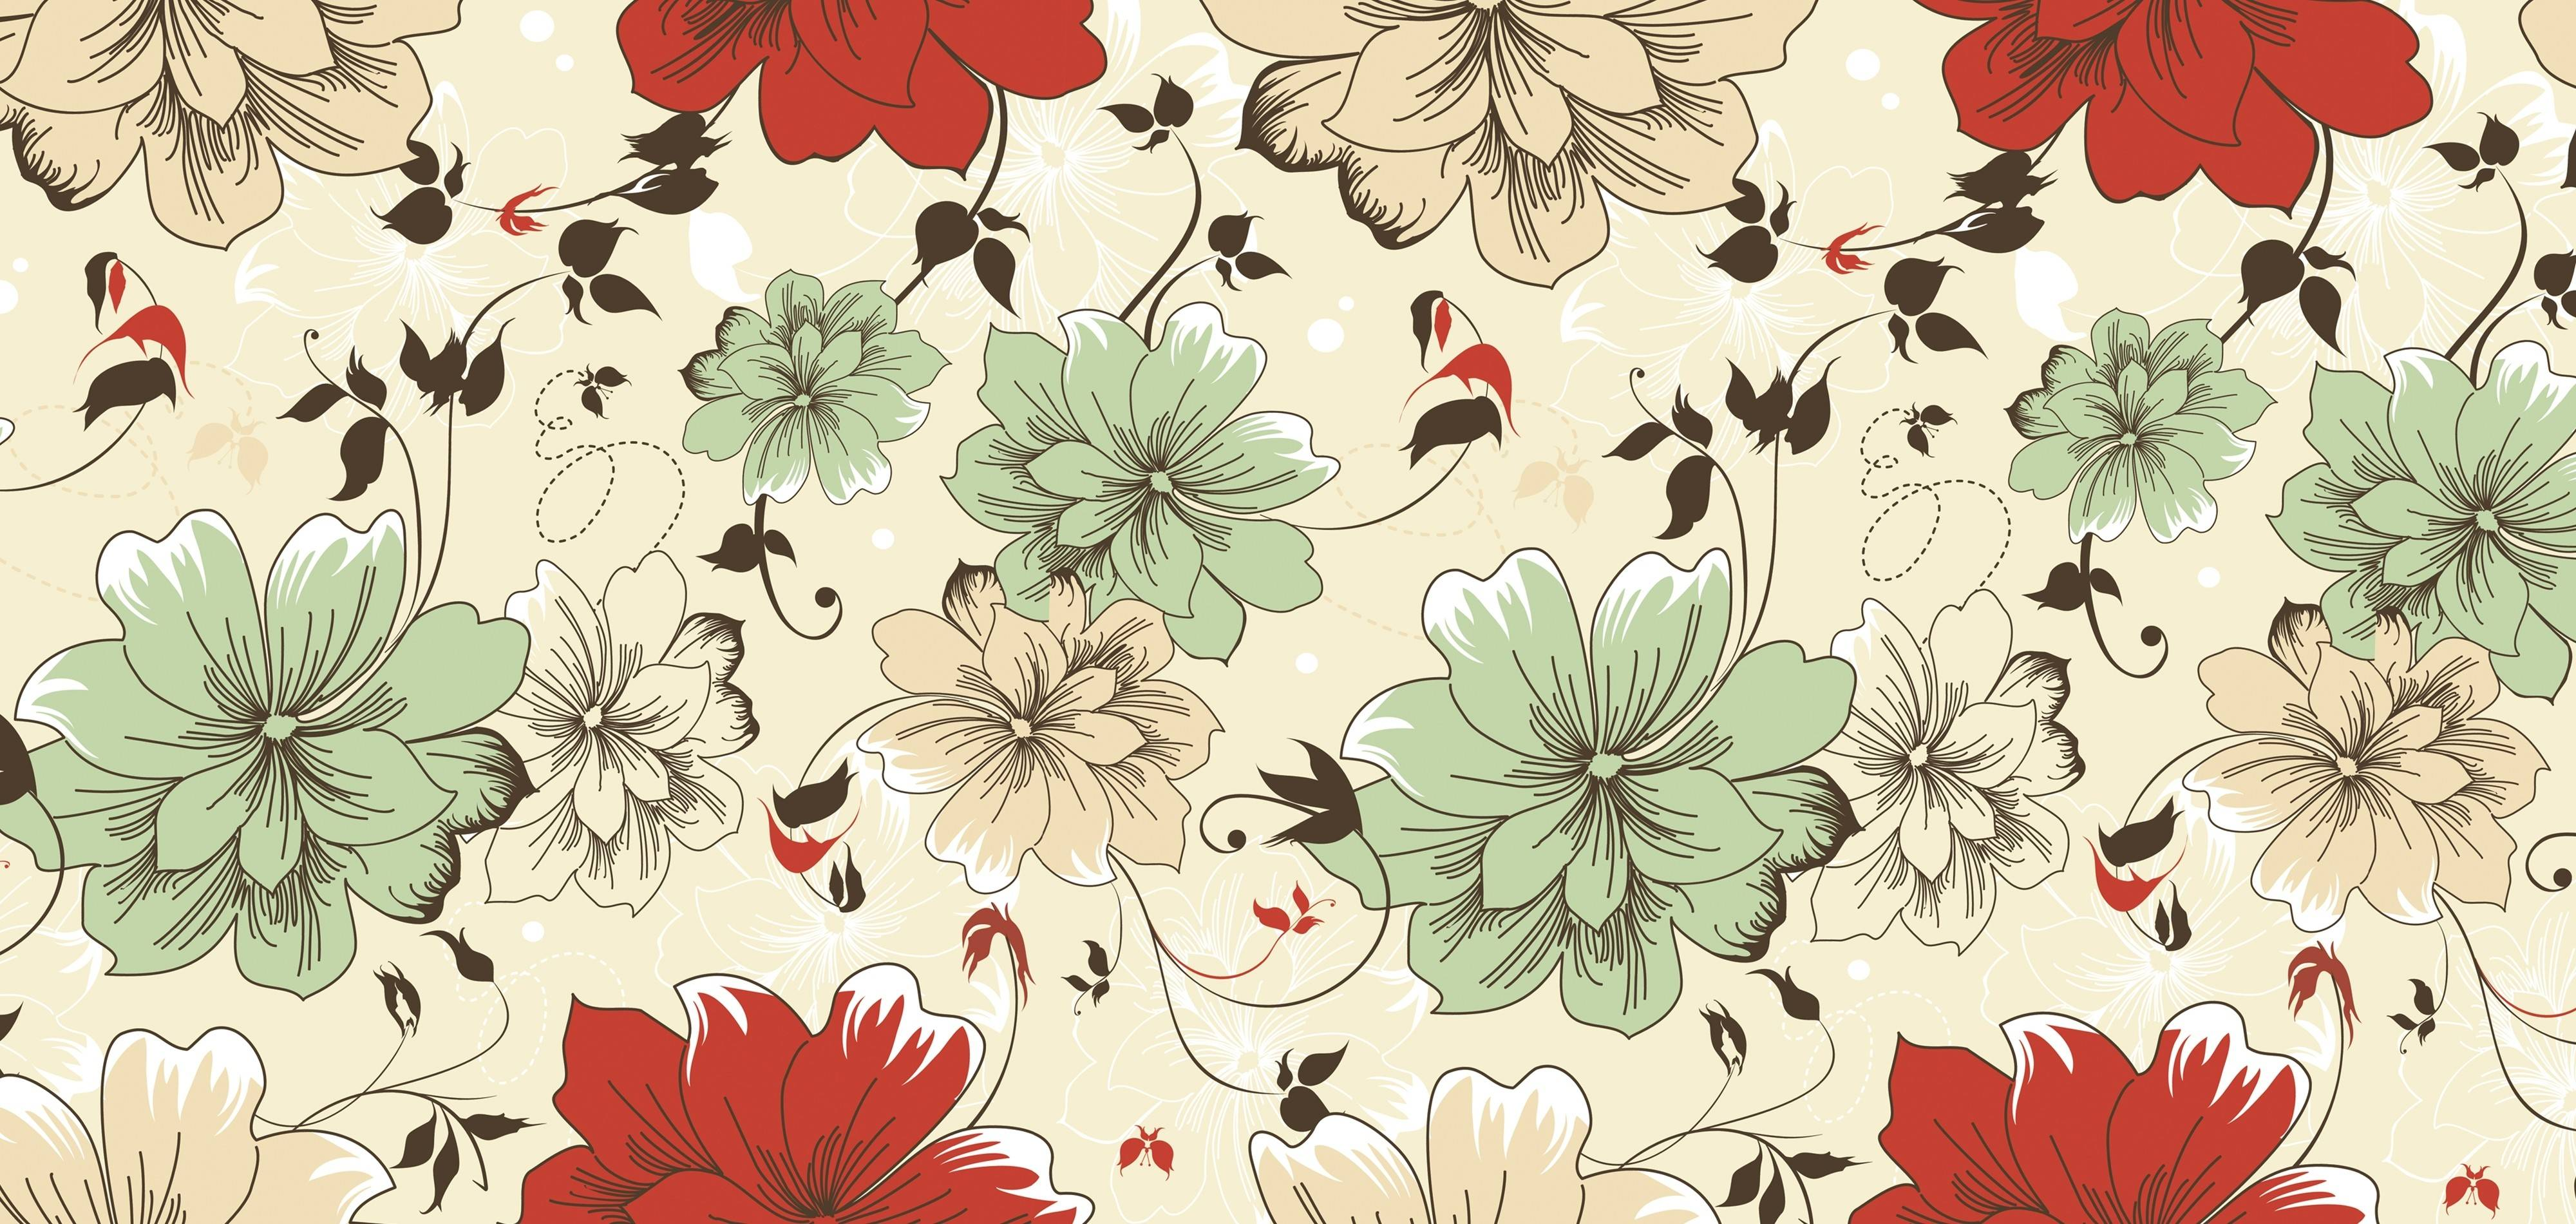 colorful floral background patterns - photo #33